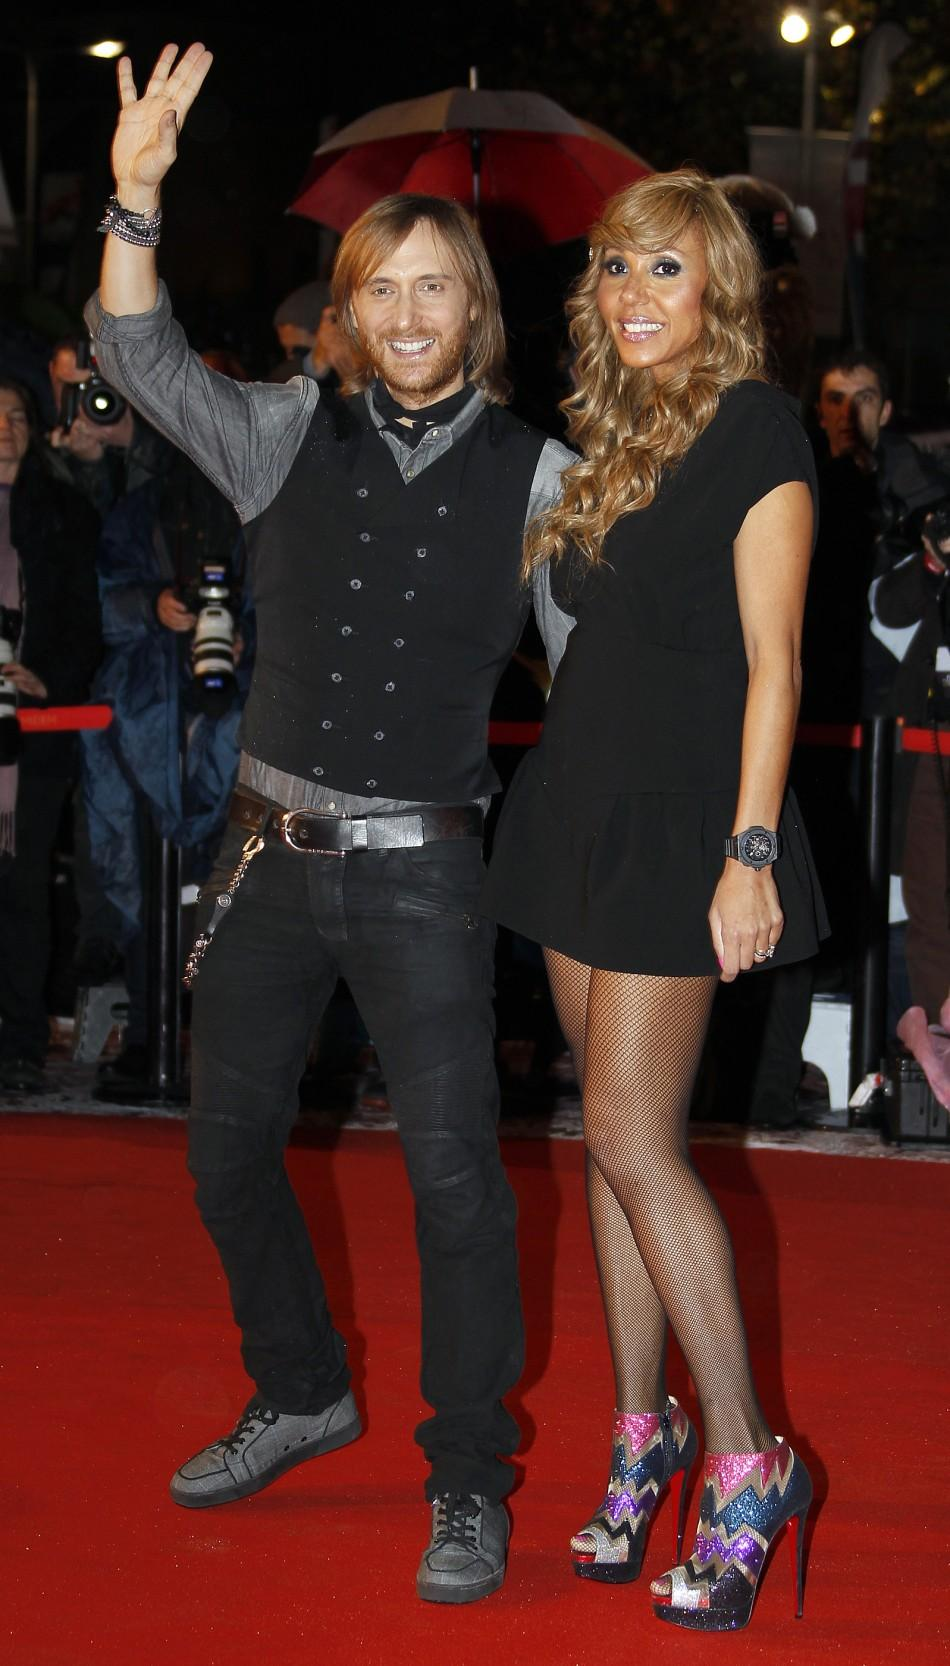 French DJ David Guetta and his wife Cathy arrive at the Cannes festival palace to attend the NRJ Music Awards in Cannes January 28, 2012.